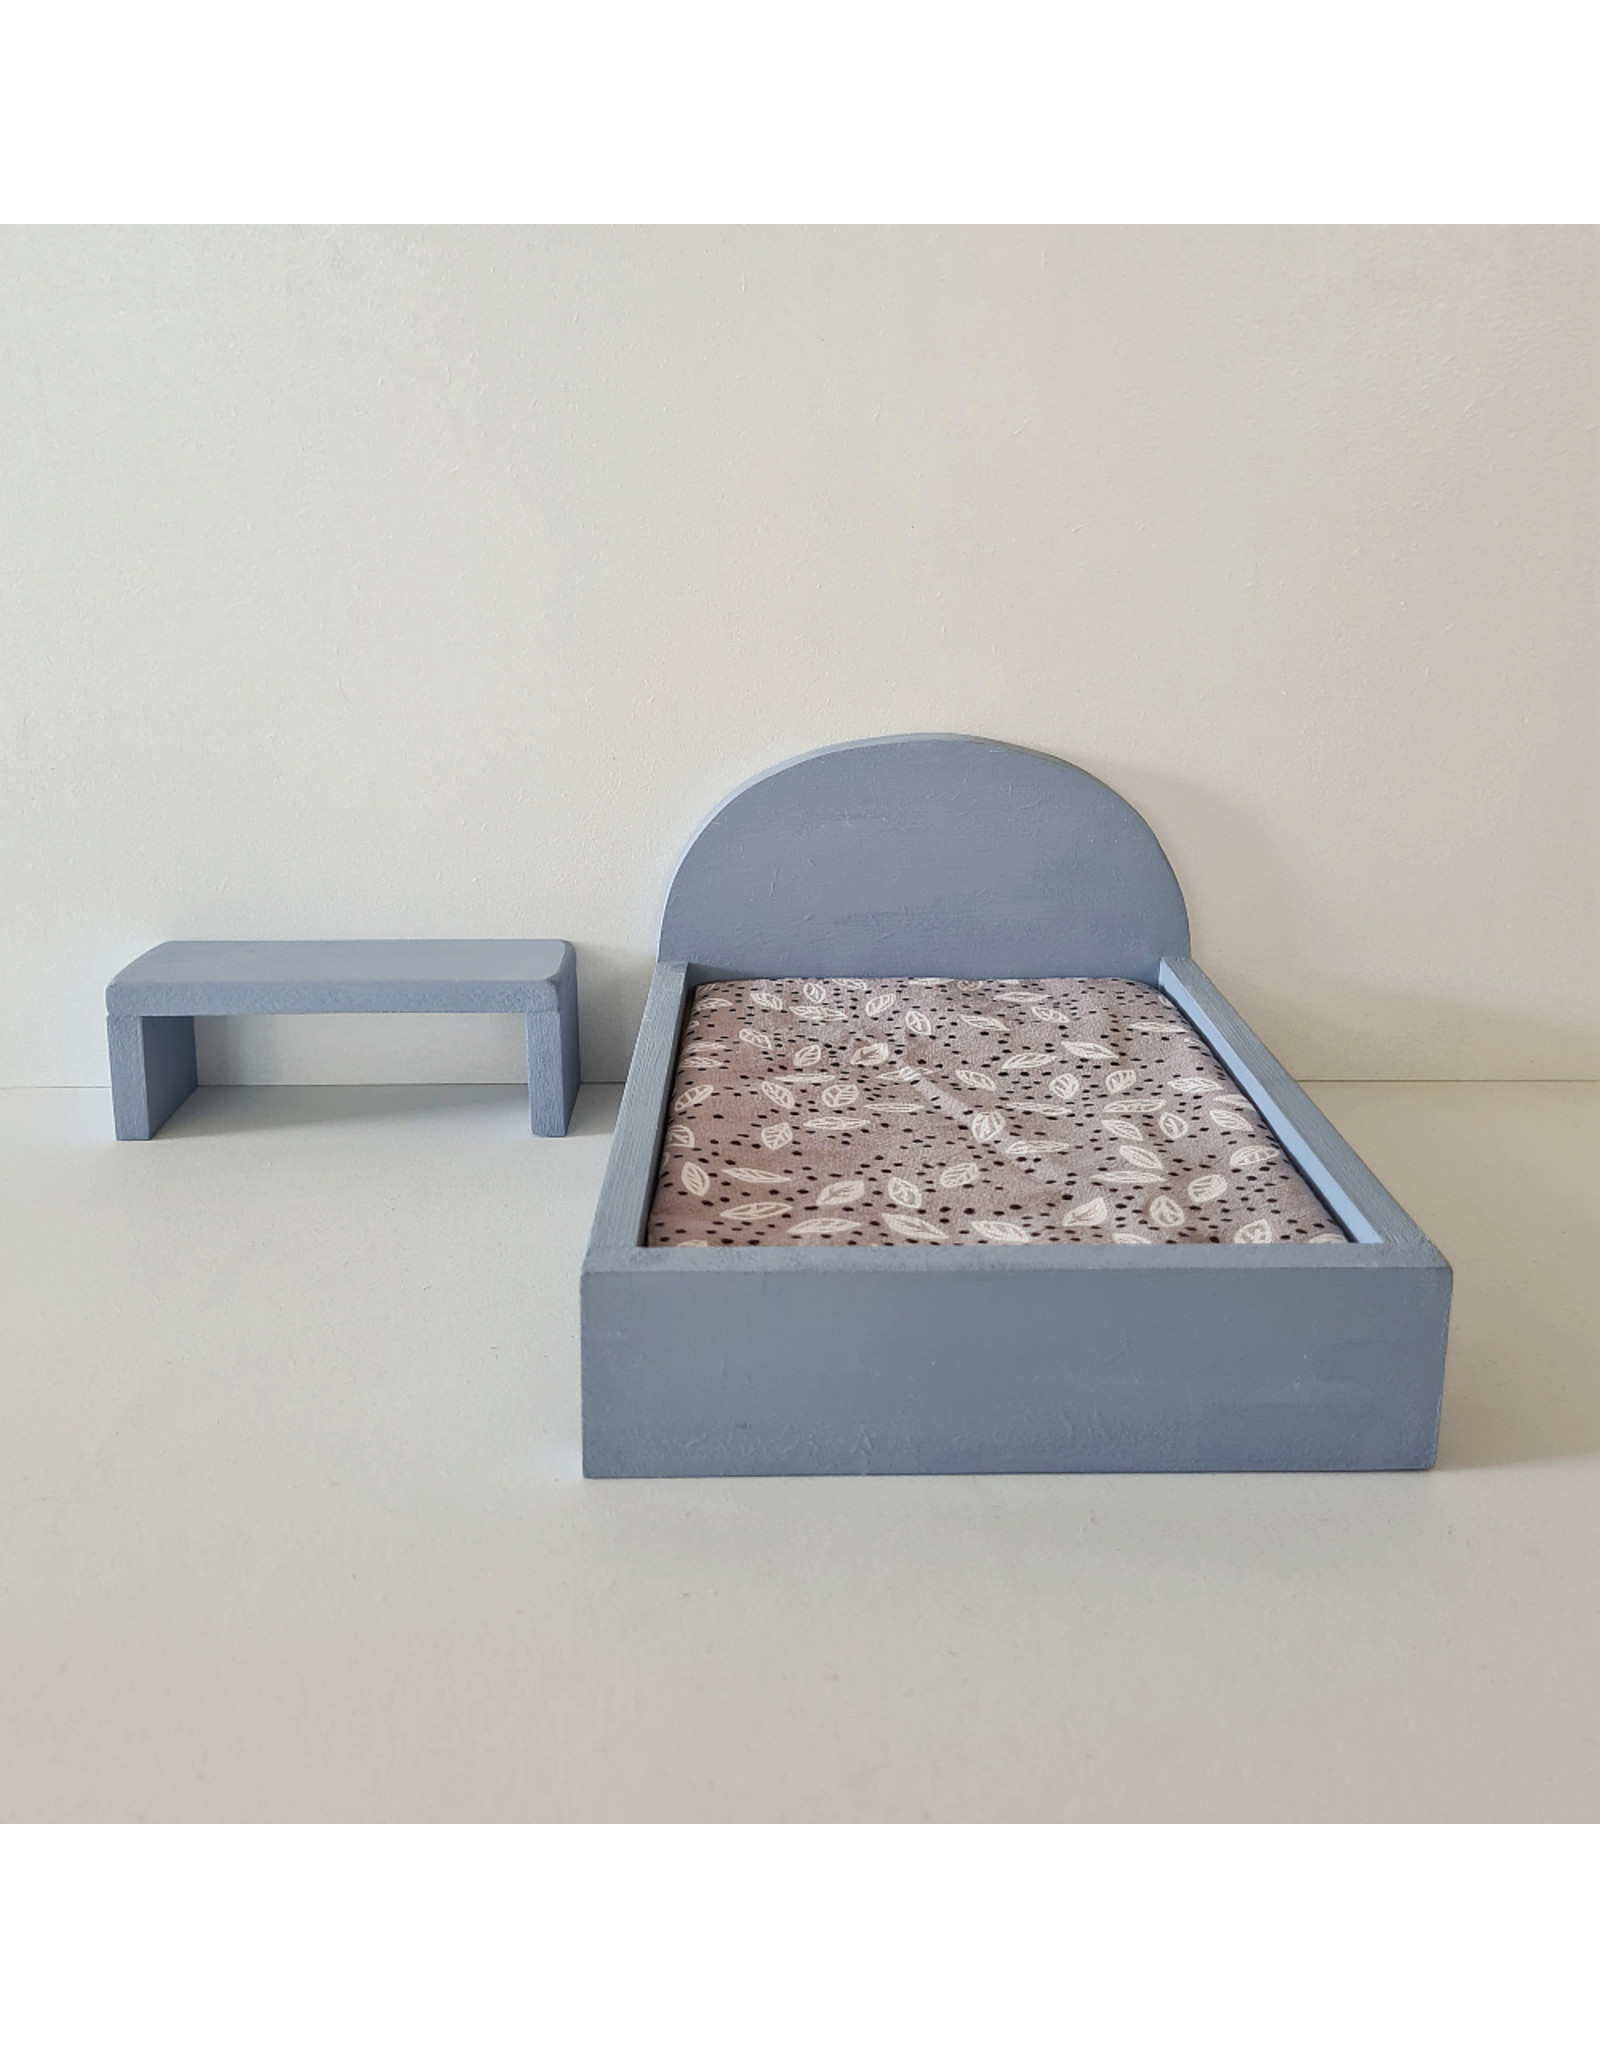 Project Dollhouse Side Table for Maileg Bed - Blurry Blue